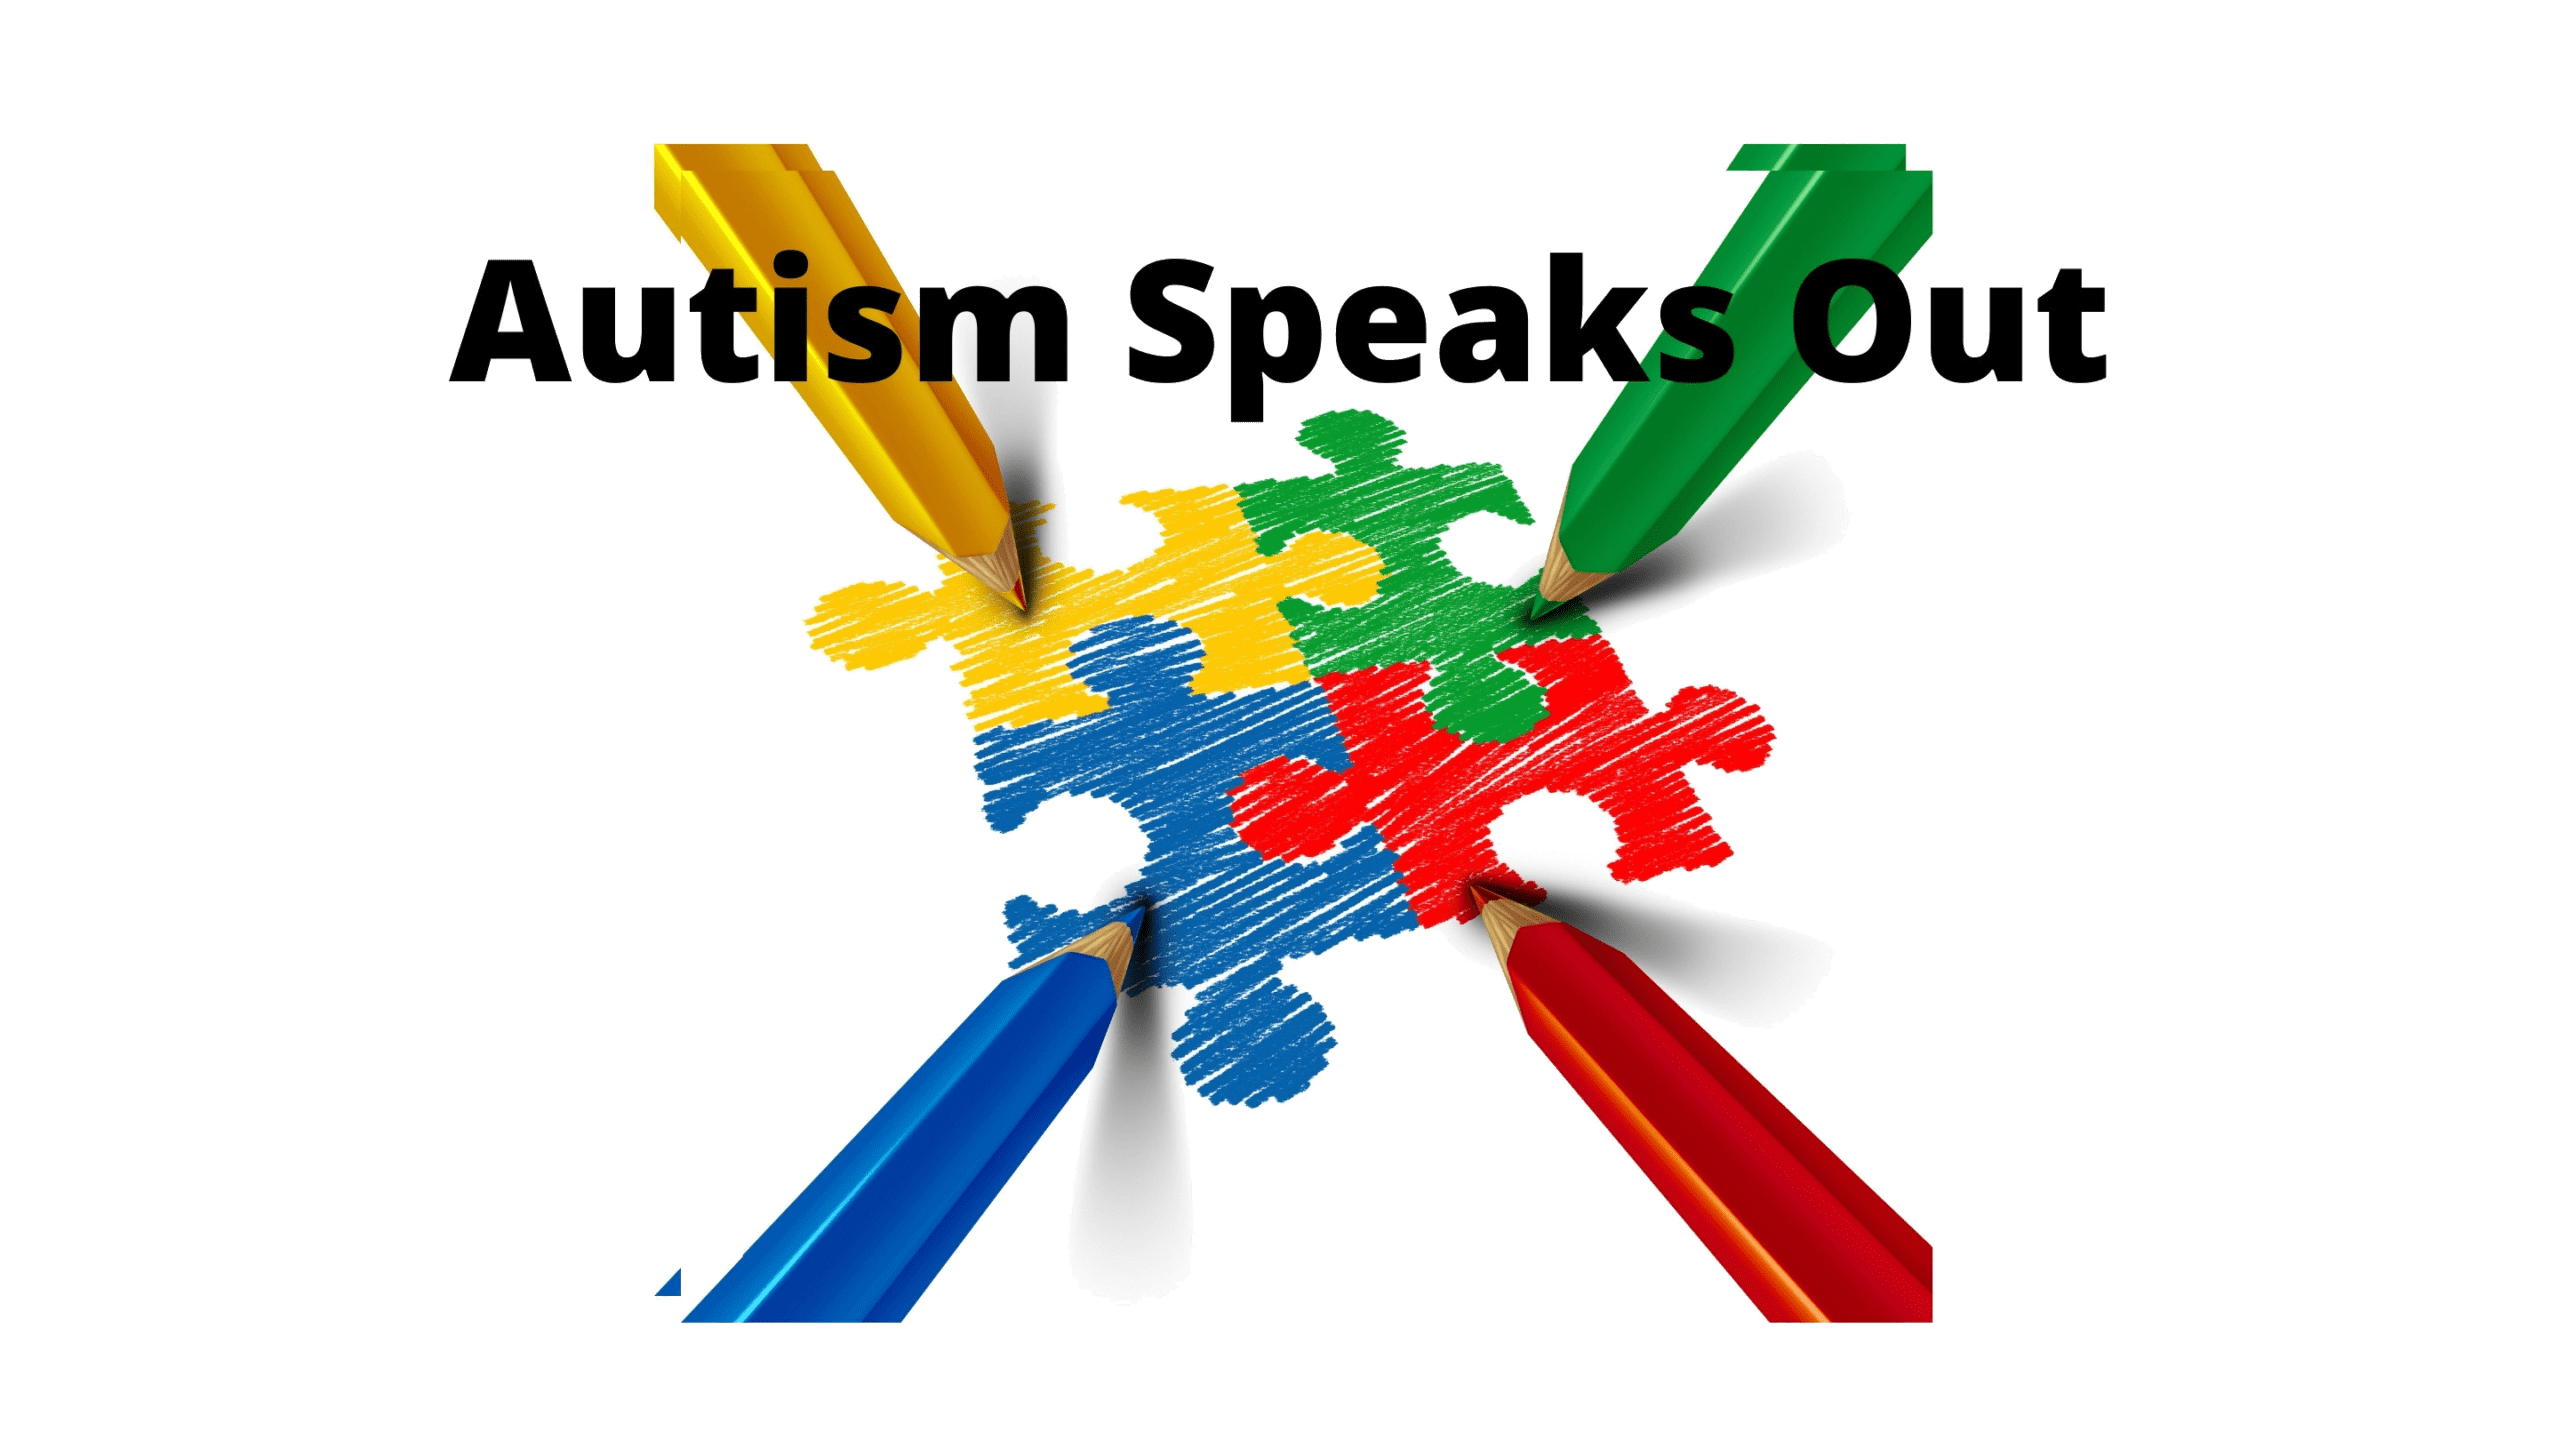 Autism Speaks Out